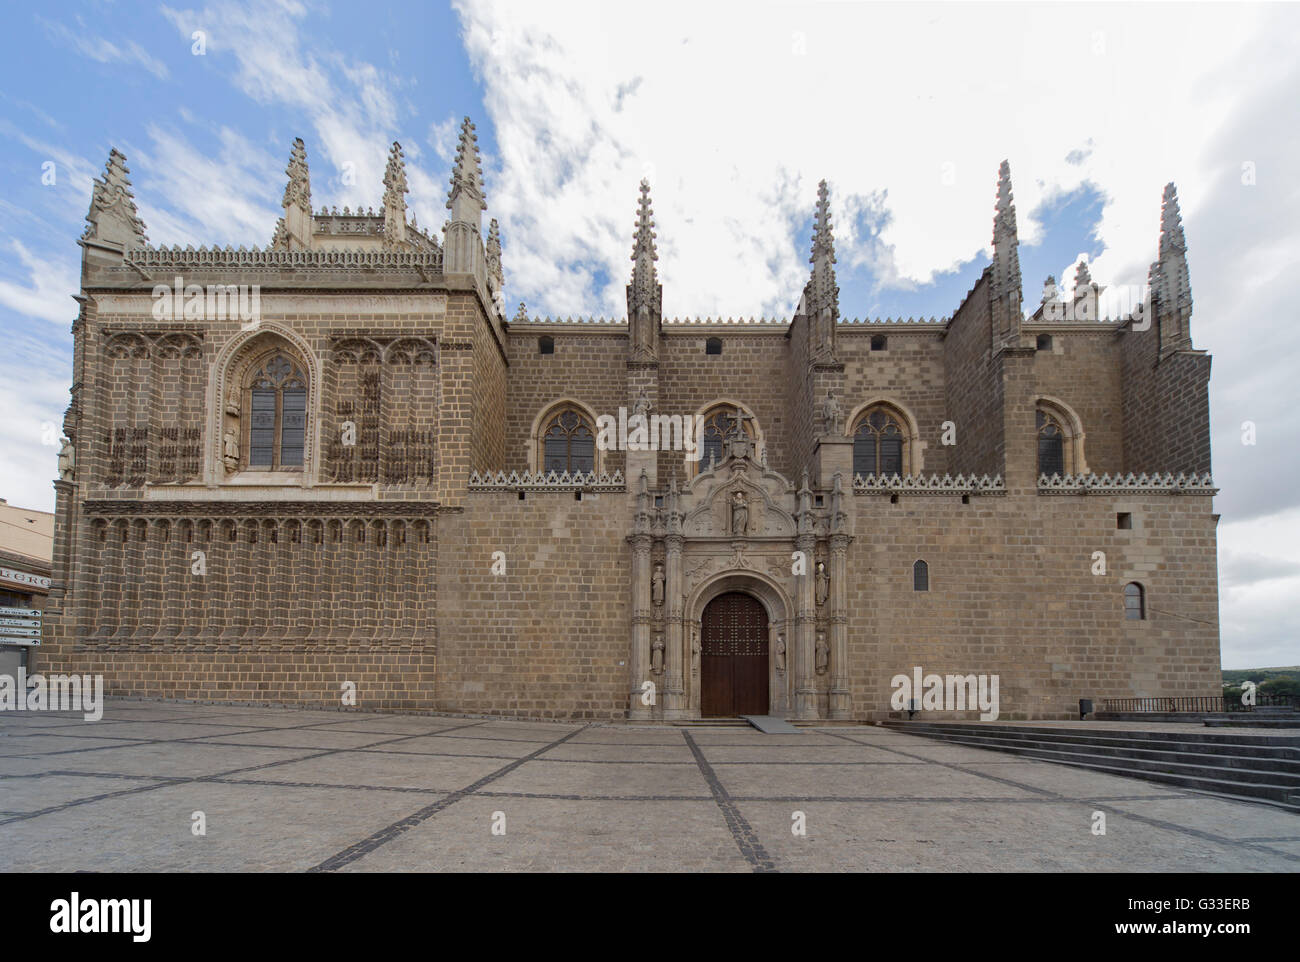 exterior of Monastery of Saint John of the Kings in Toledo Spain architect Juan Guas . (The Monastery of San Juan - Stock Image